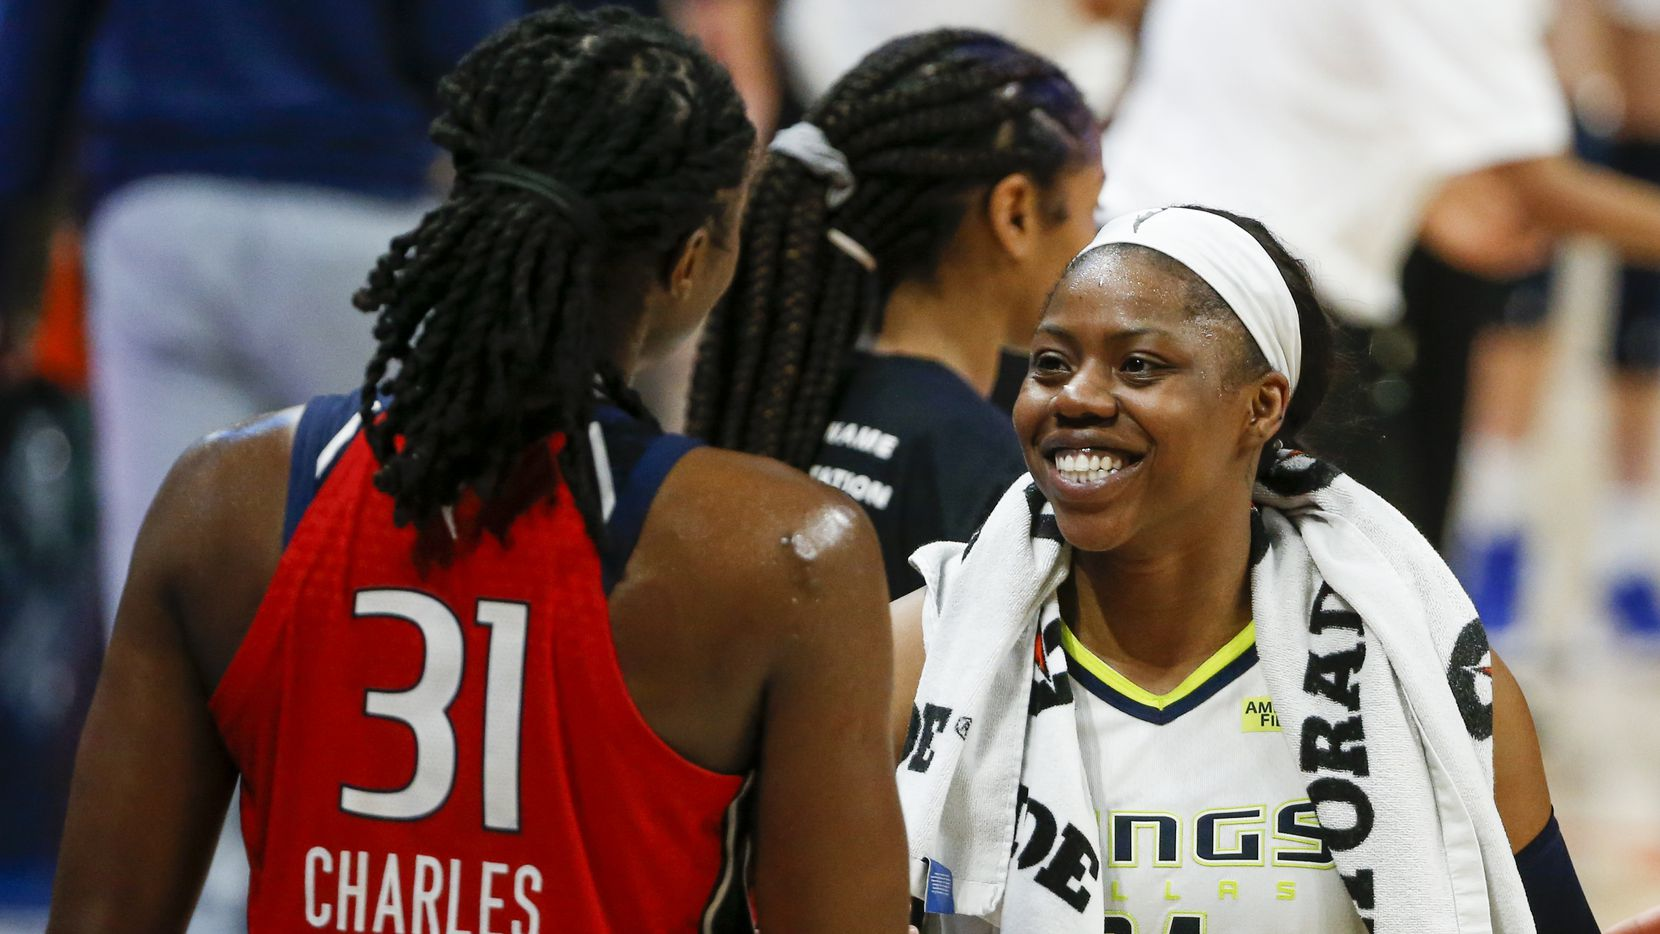 Dallas Wings guard Arike Ogunbowale (24) greets Washington Mystics center Tina Charles (31) after an 85-74 win over the Mystics at College Park Center on Saturday, June 26, 2021, in Arlington. (Elias Valverde II/The Dallas Morning News)